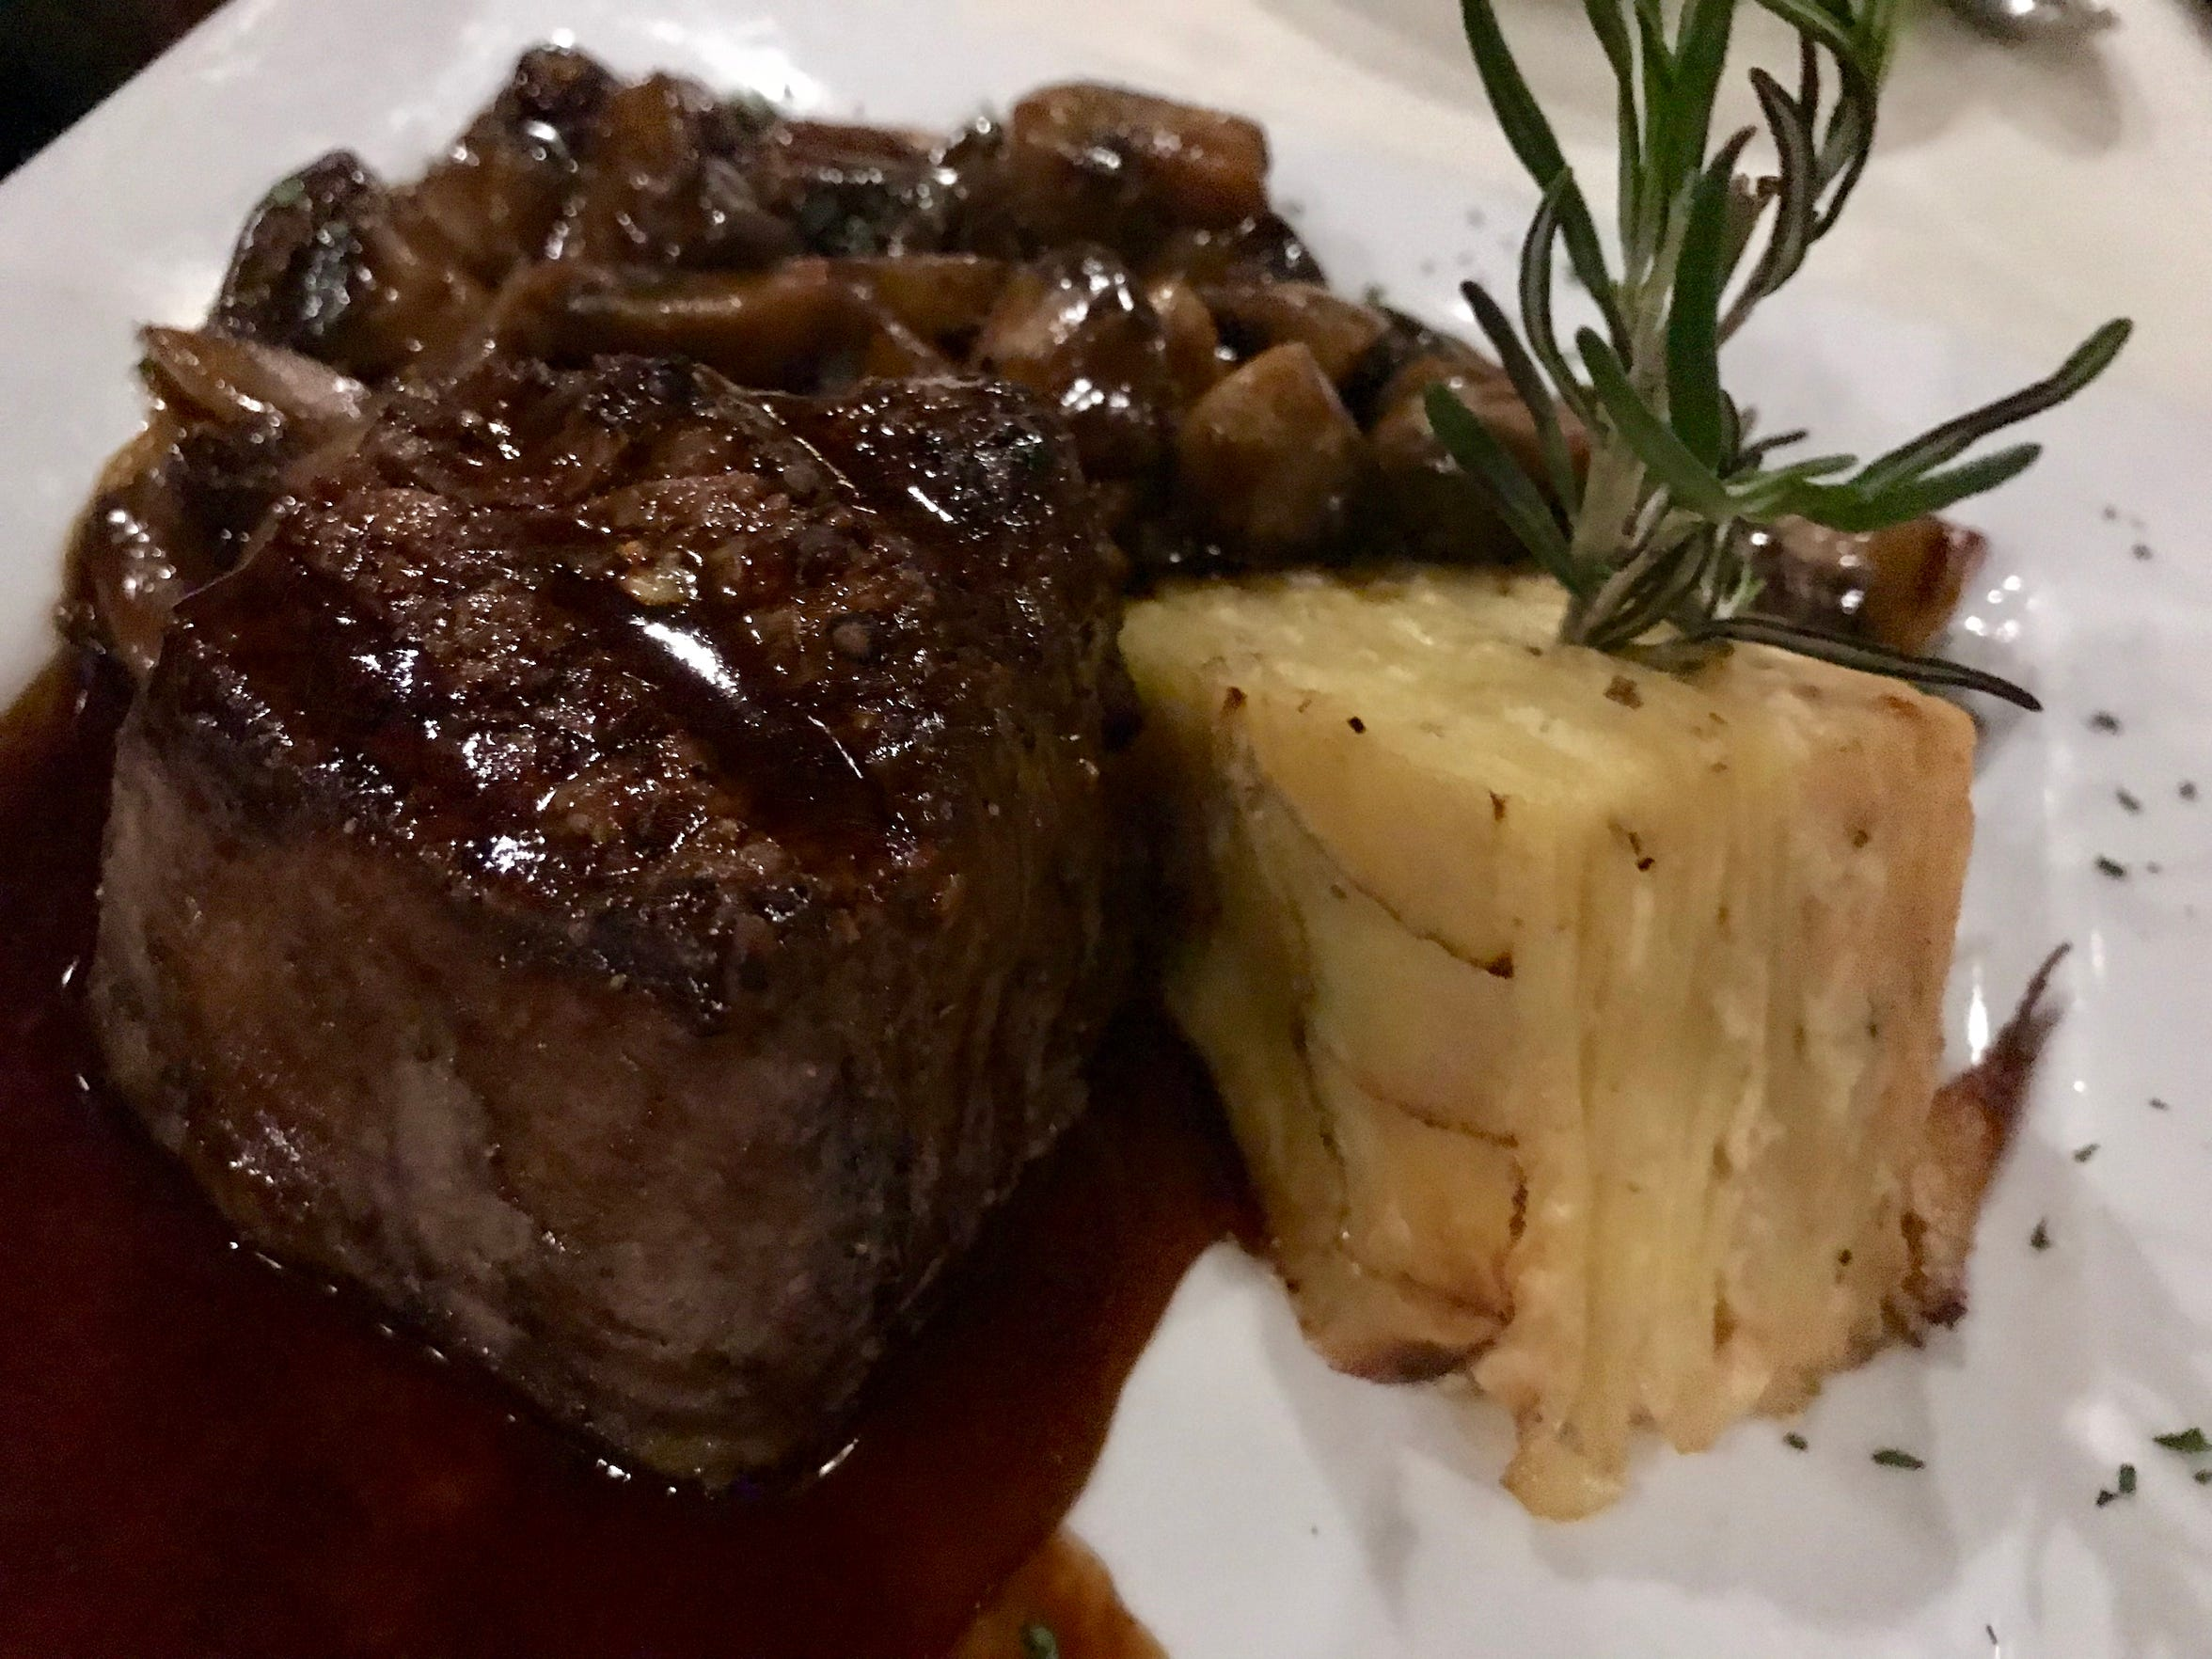 Filet of beef is served with red wine sauce and dauphinoise potatoes (plus optional mushrooms) at the Union House, S42-W31320 Highway 83 in Genesee Depot.